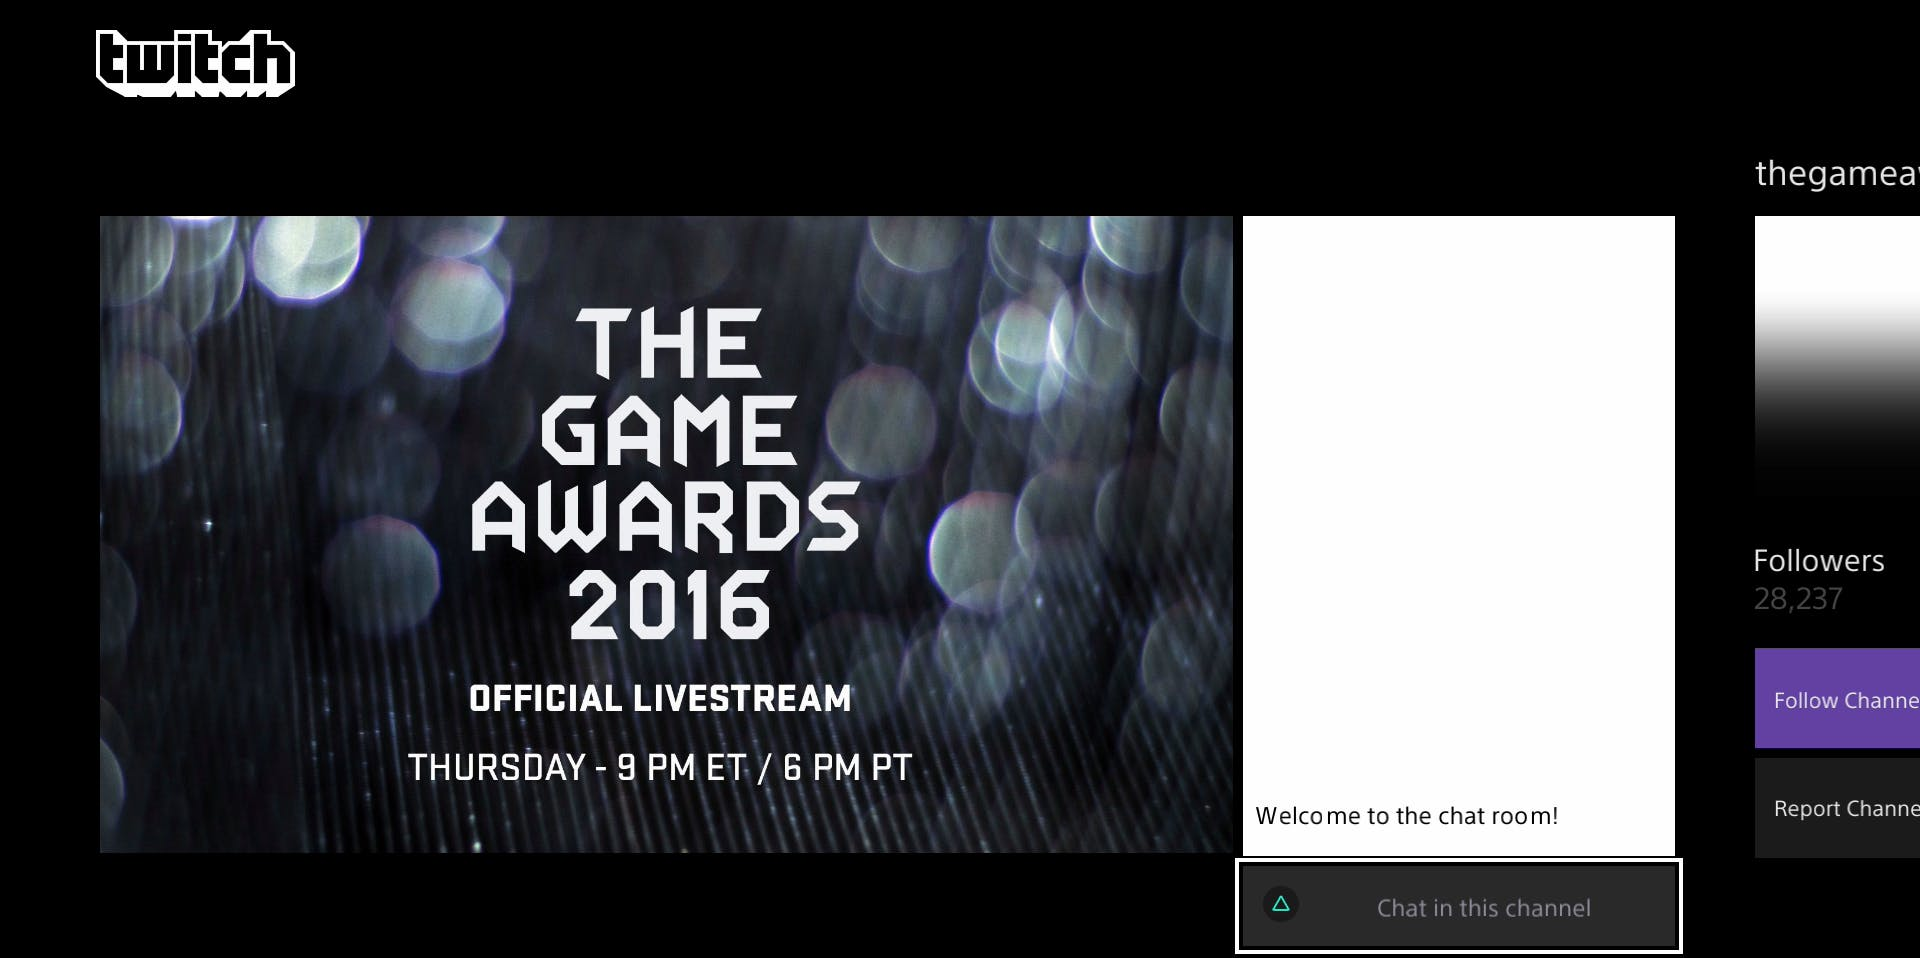 Twitch might be the best place to be in order to discuss the Awards in real time with other fans.